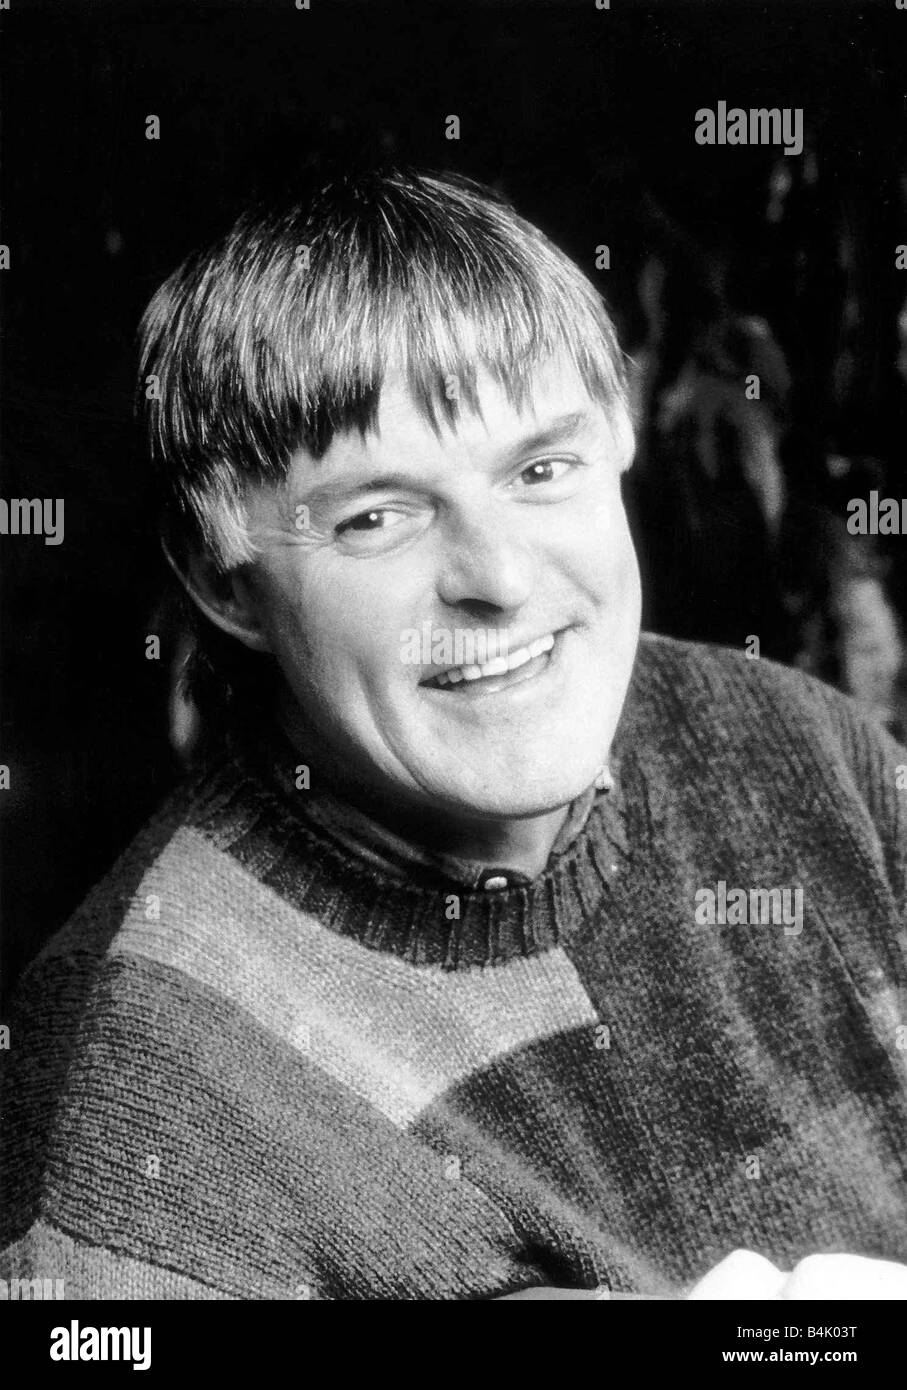 Gary Files Actor Who Stars In The TV Programme Neighbours June 1988 Dbase - Stock Image